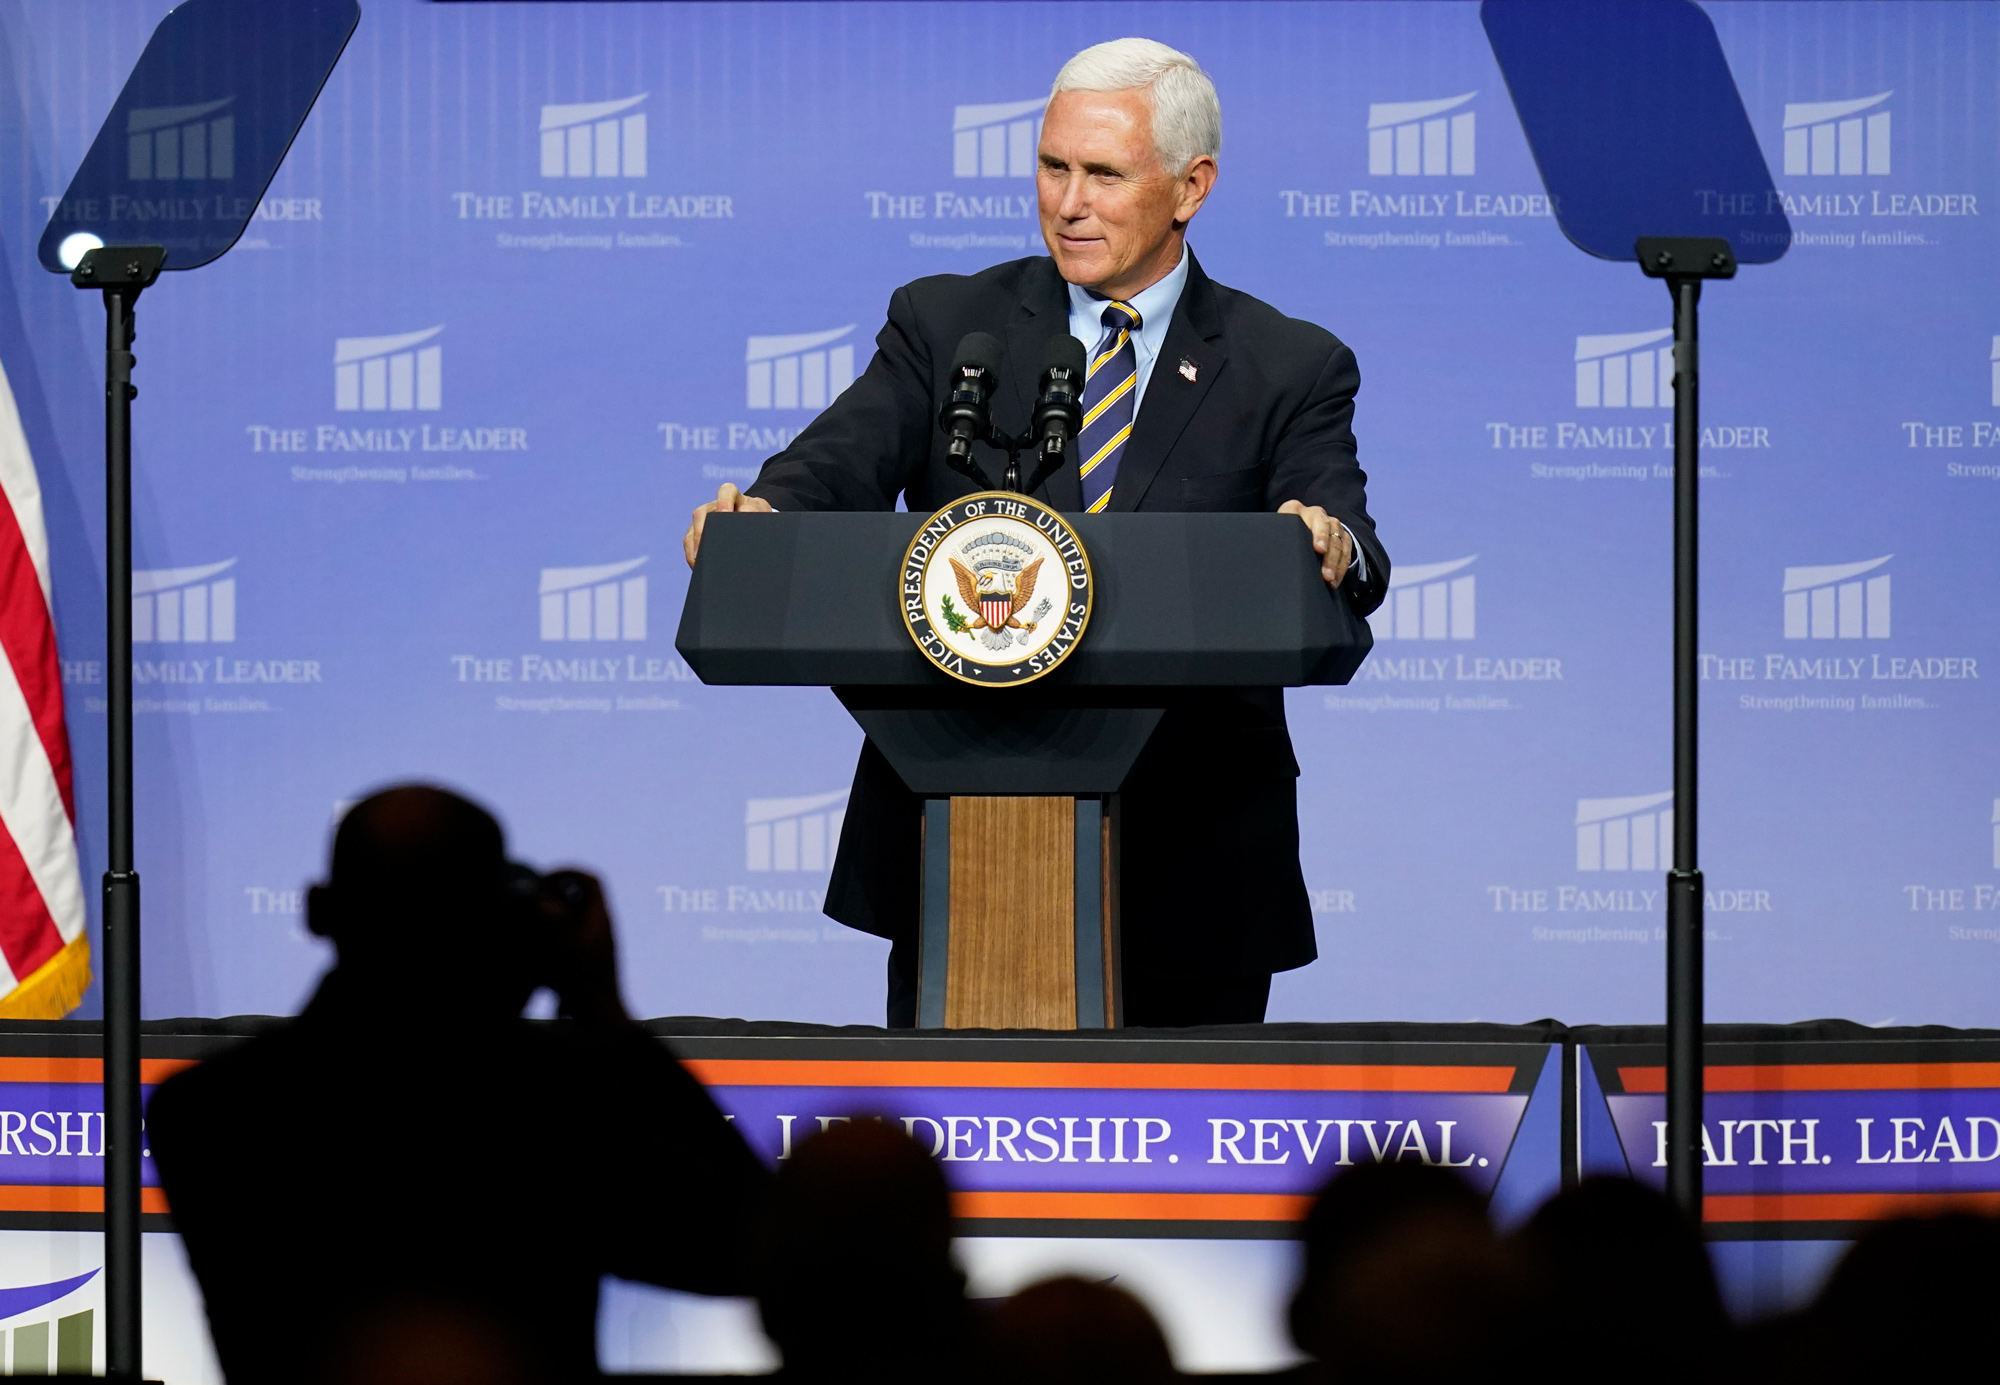 Vice President Mike Pence speaks at an event hosted by The Family Leader Foundation on October 1 in Des Moines, Iowa.